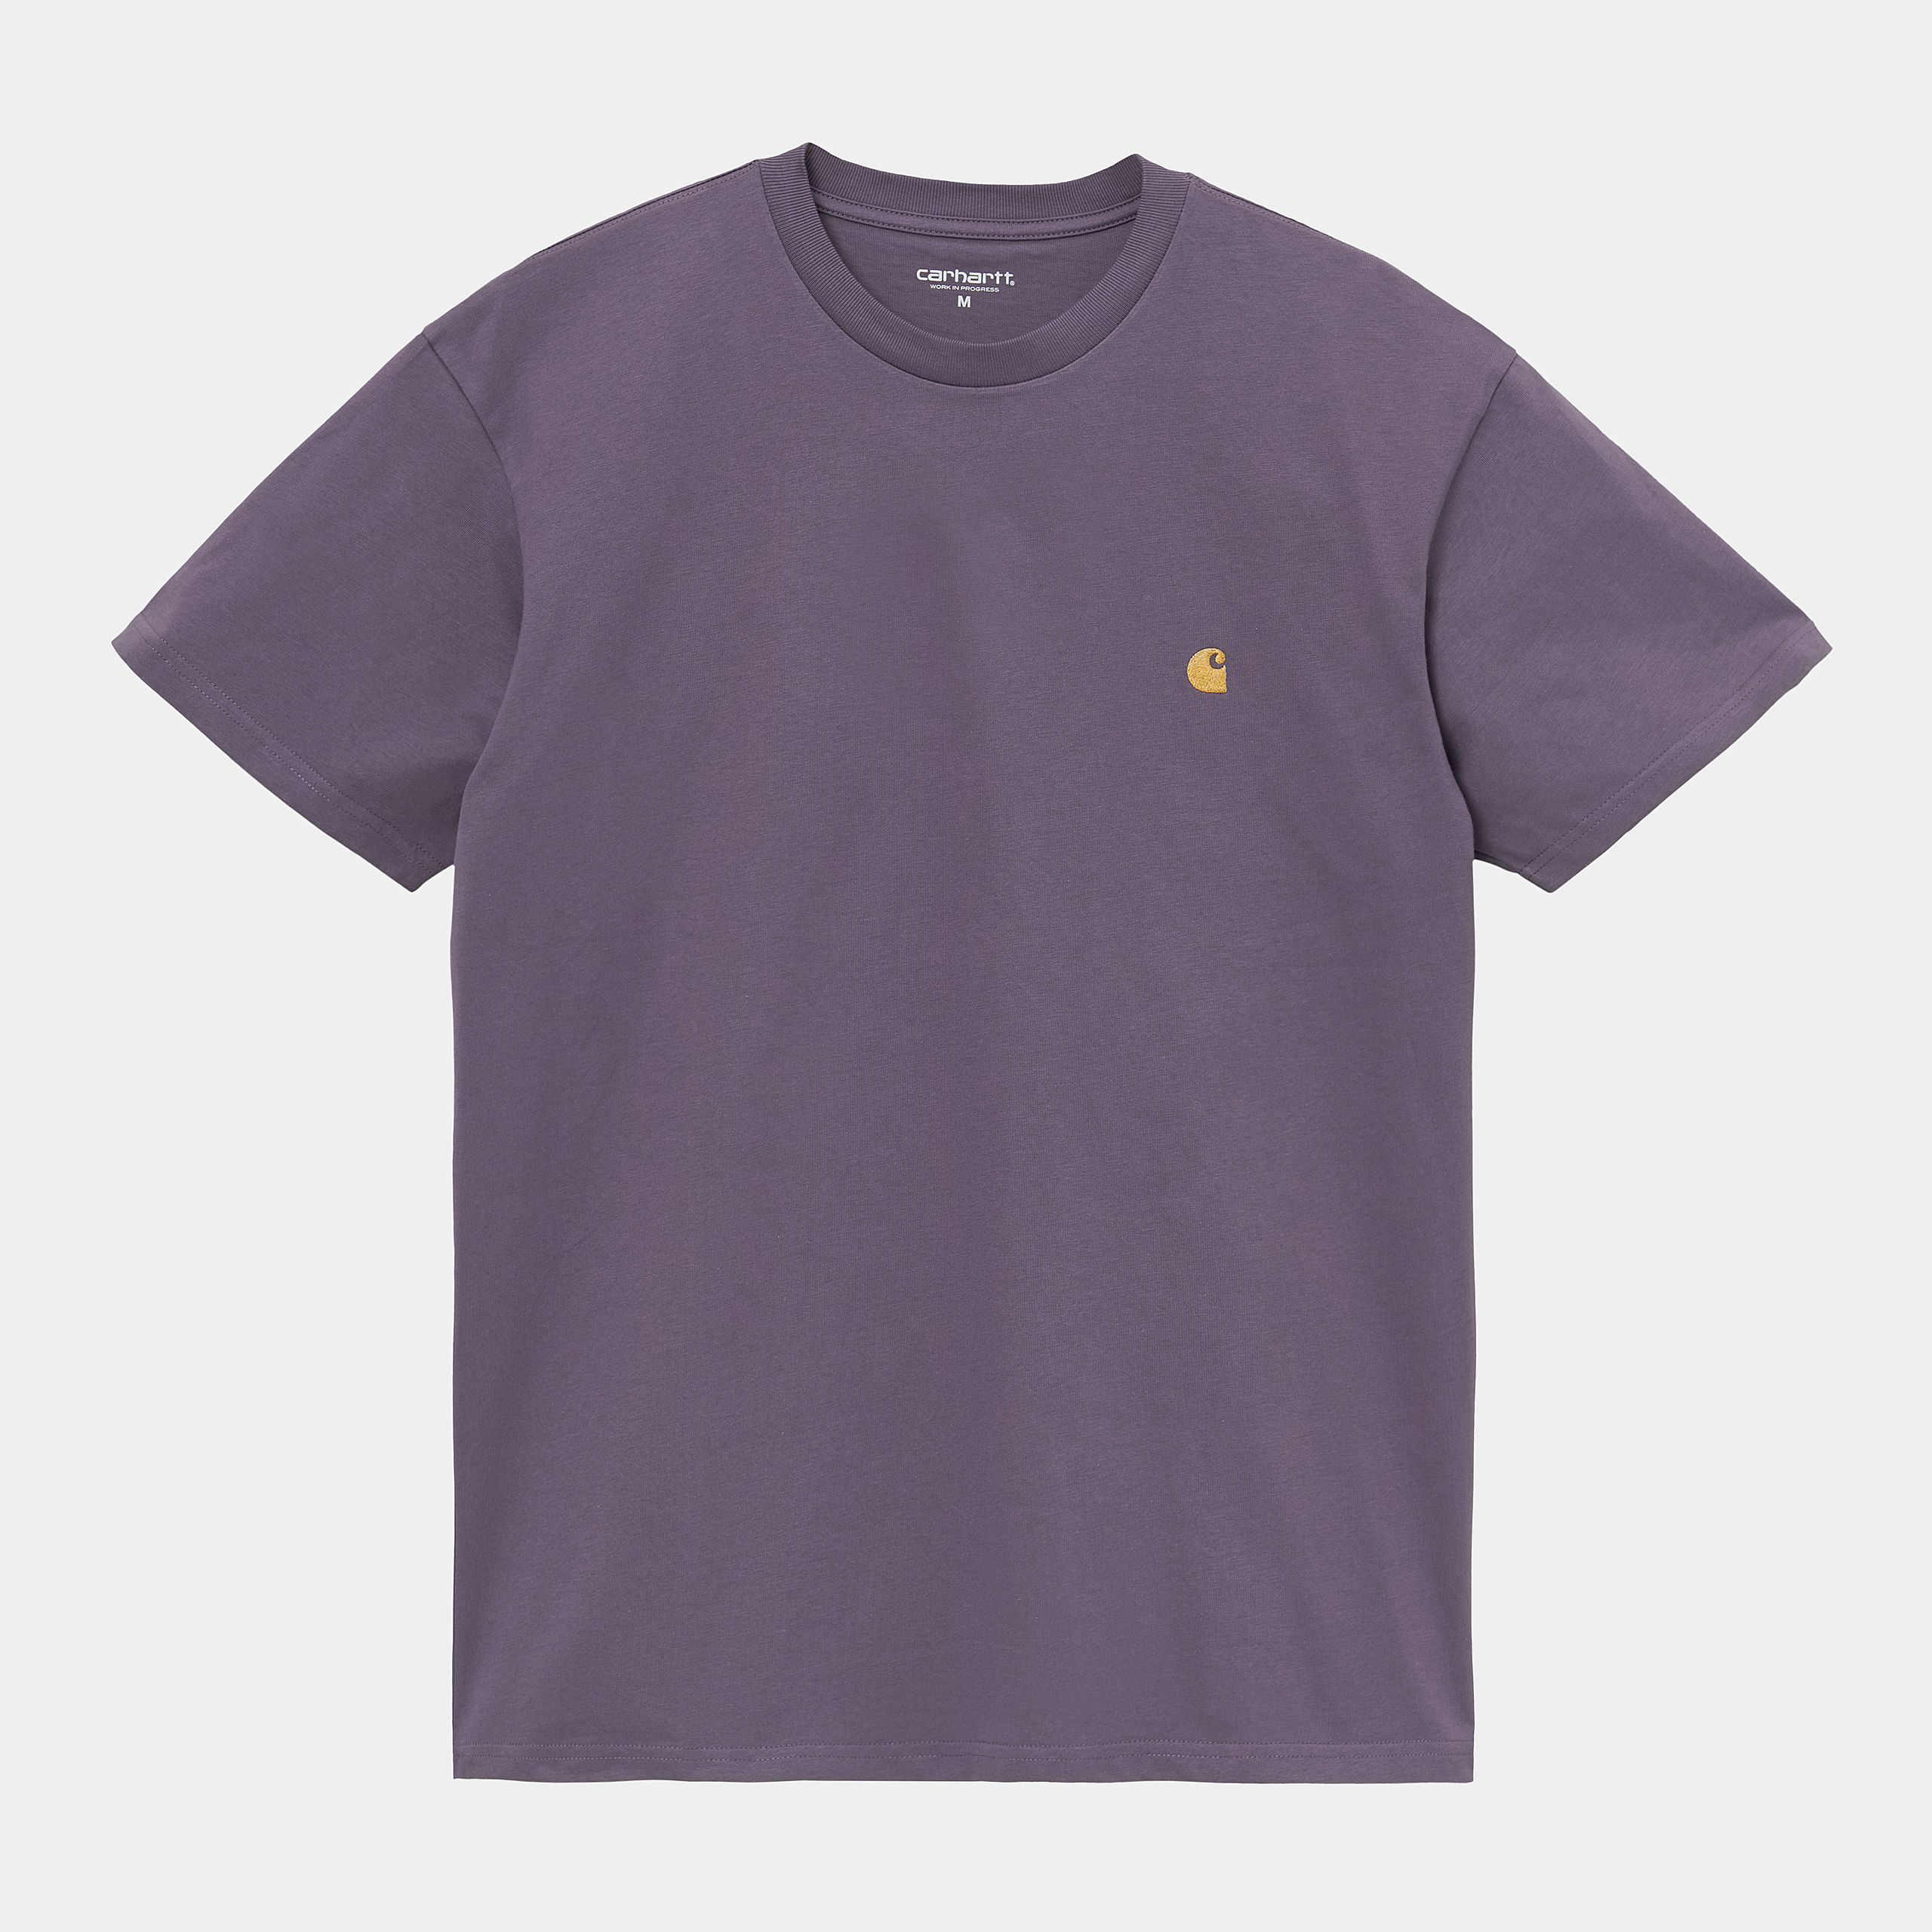 Carhartt WIP - CHASE T-SHIRT  - Provence/Gold